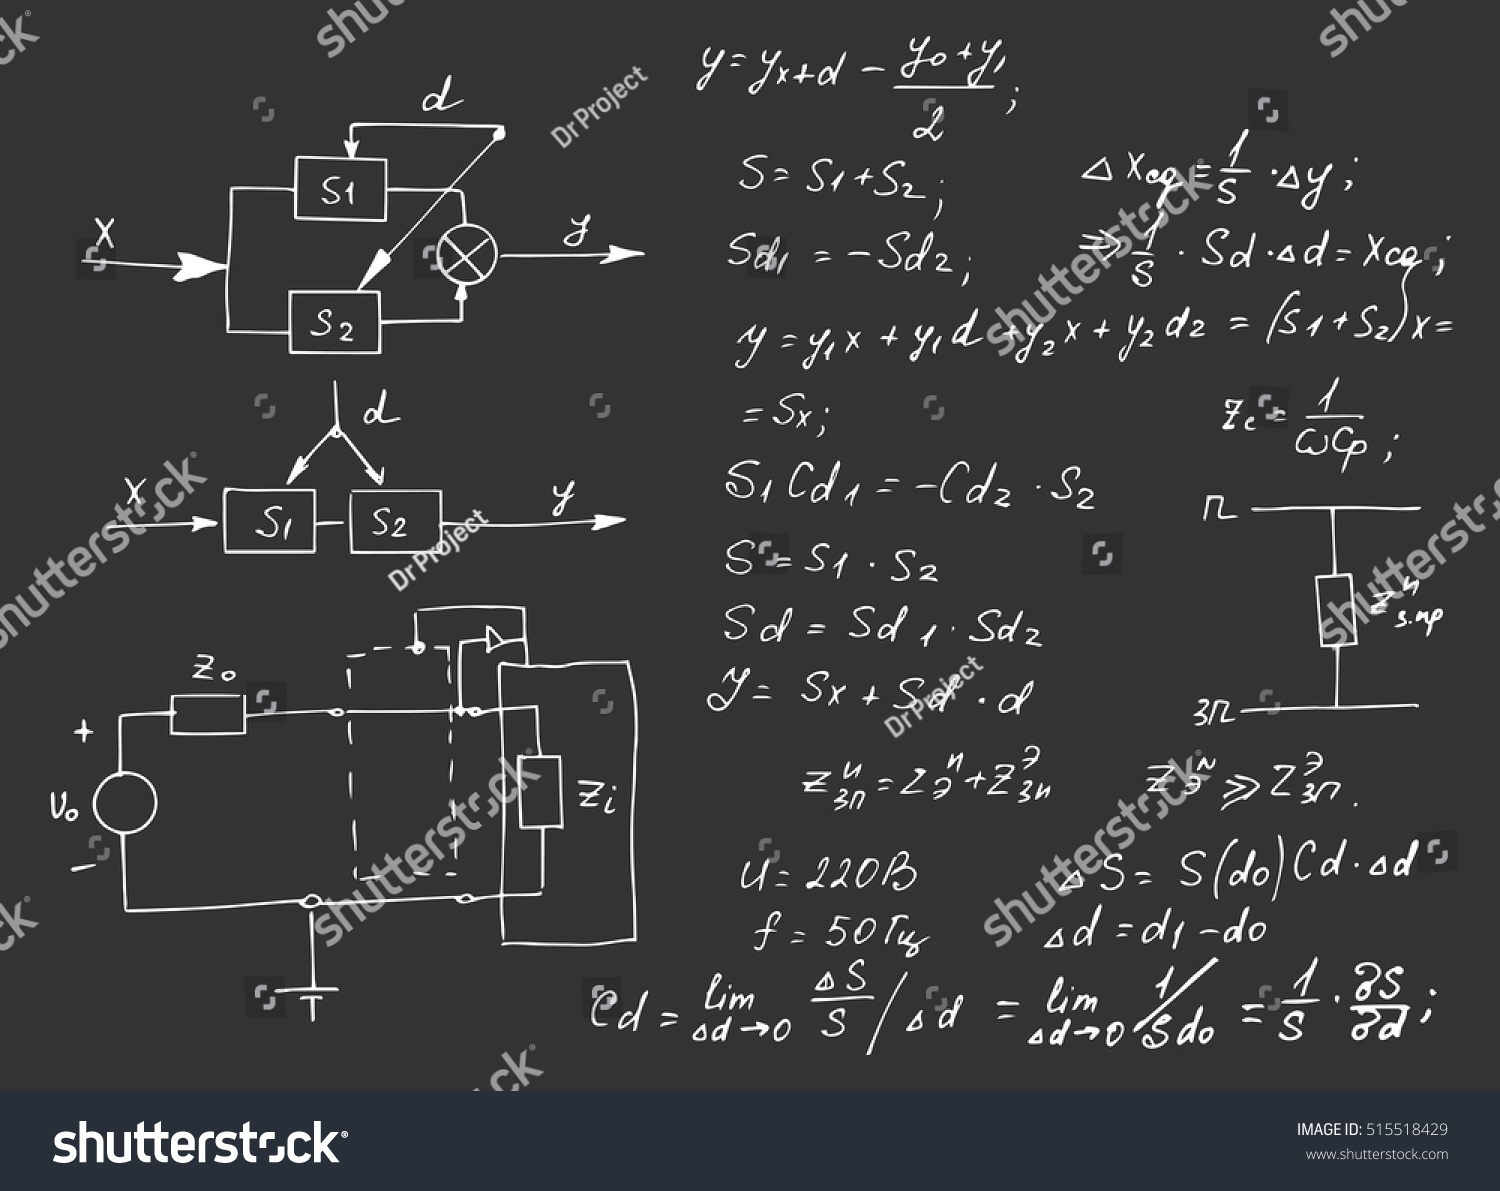 Physics Electronic Engineering Mathematics Equation Calculations Circuit Diagram Notation On Symbols Stock Vector And Endless Hand Writing School